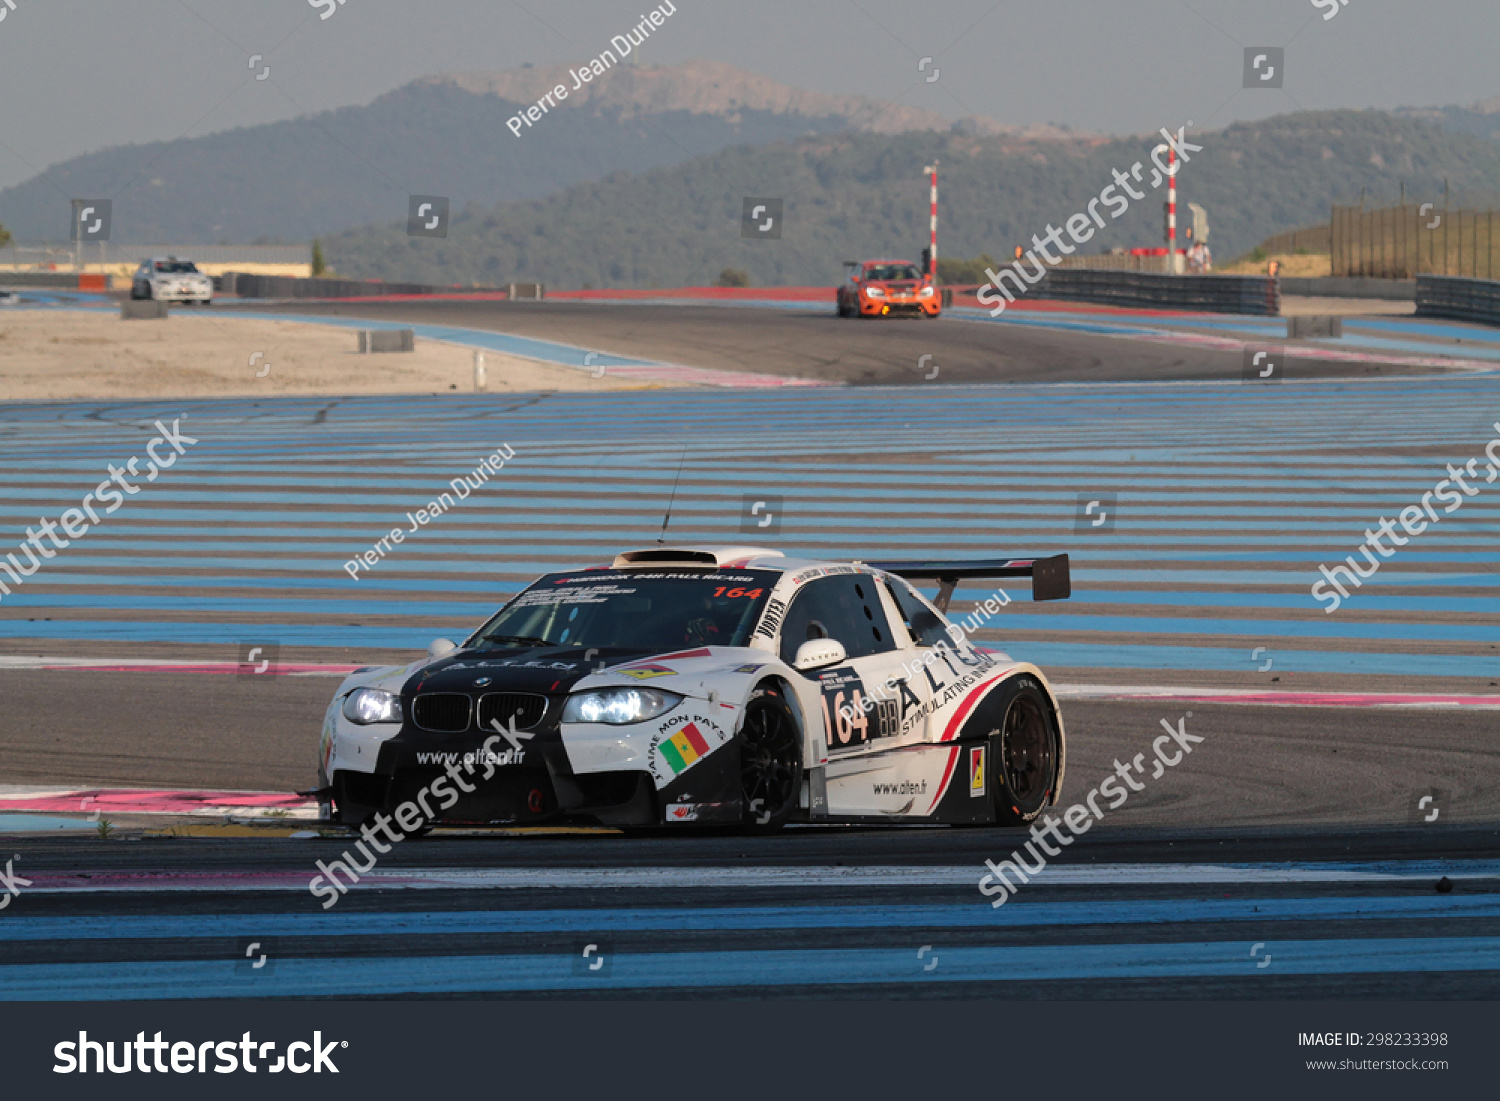 Le Castellet Circuit : Le castellet france july 11 2015 stock photo edit now 298233398